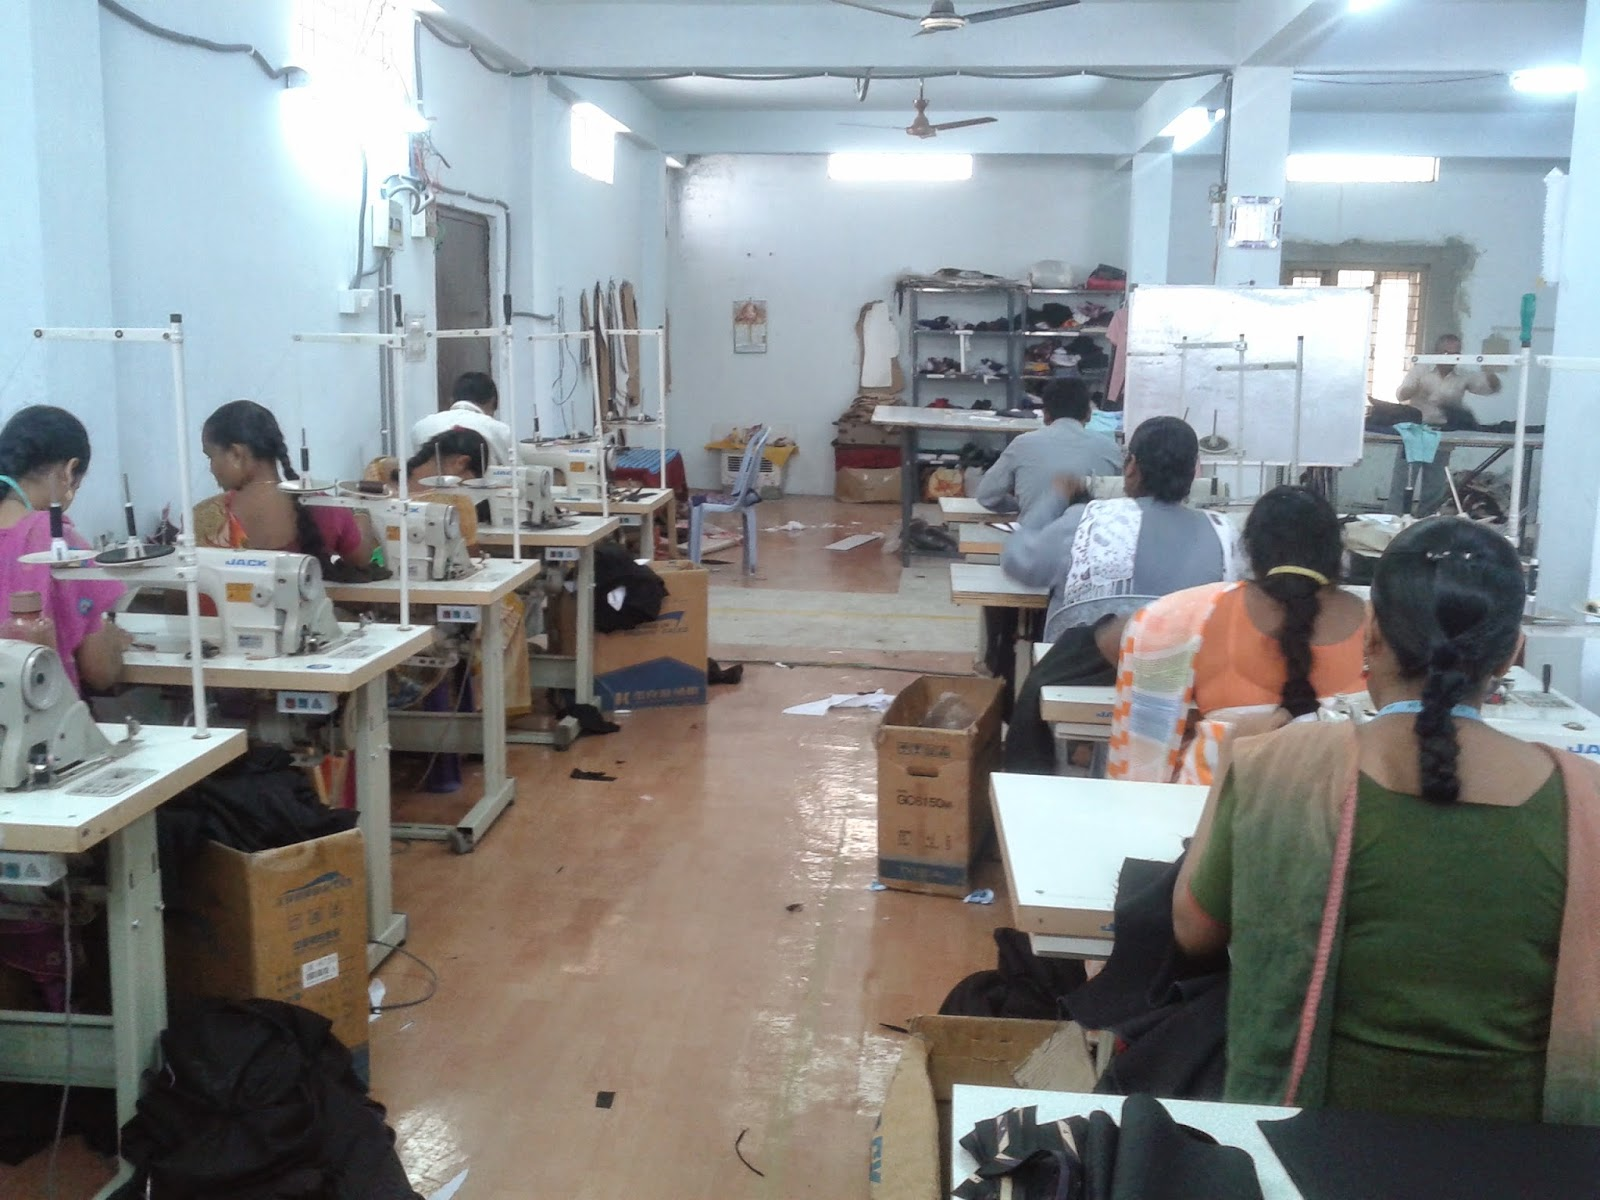 Entering Into Garment Manufacturing Business